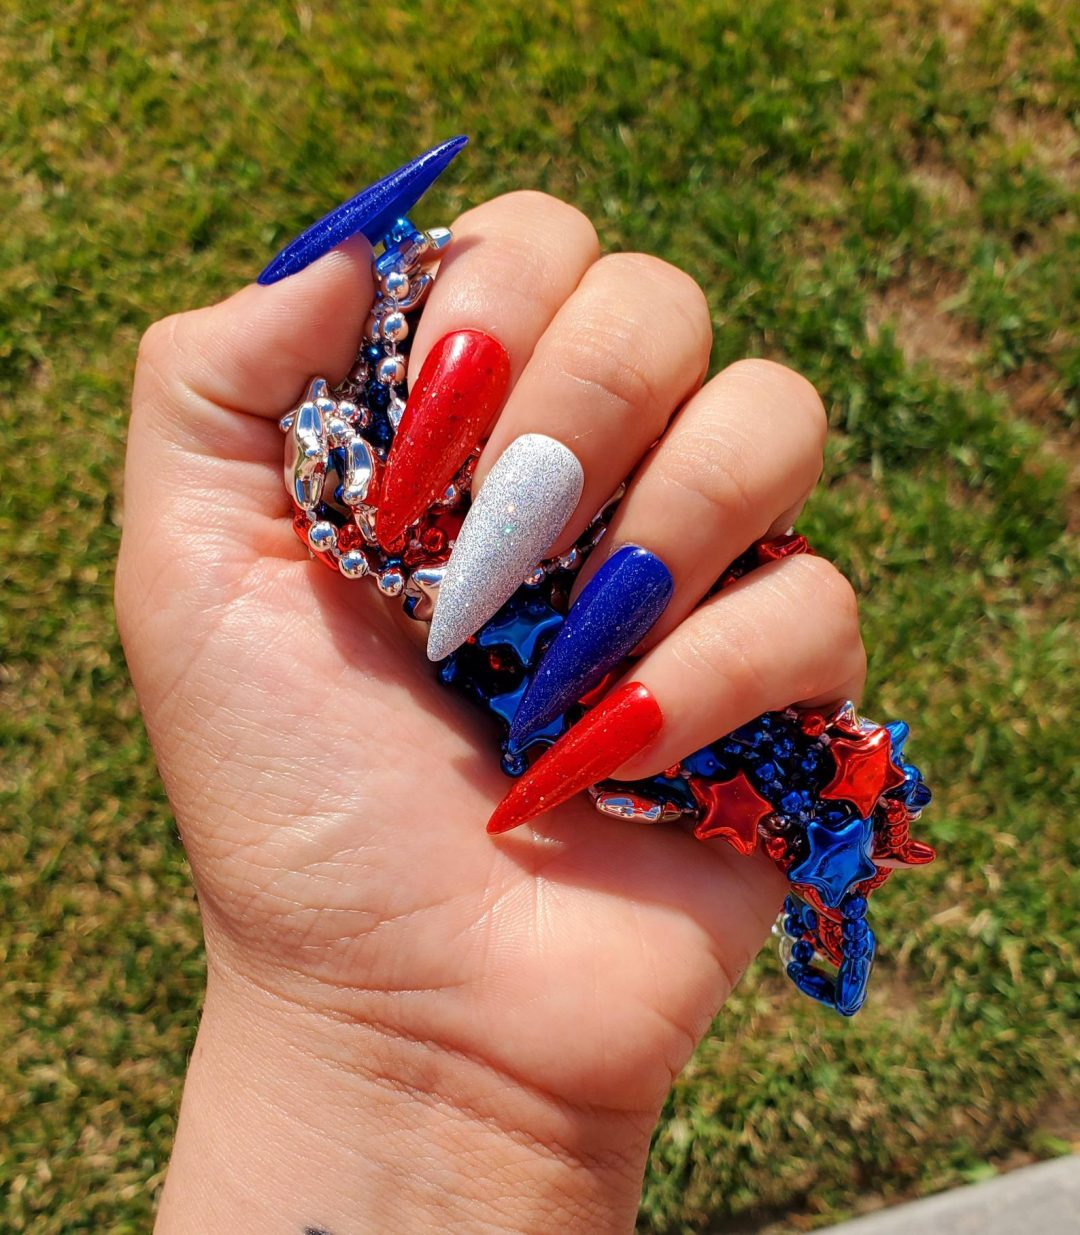 Red, white and blue Independence Nails in stiletto shape